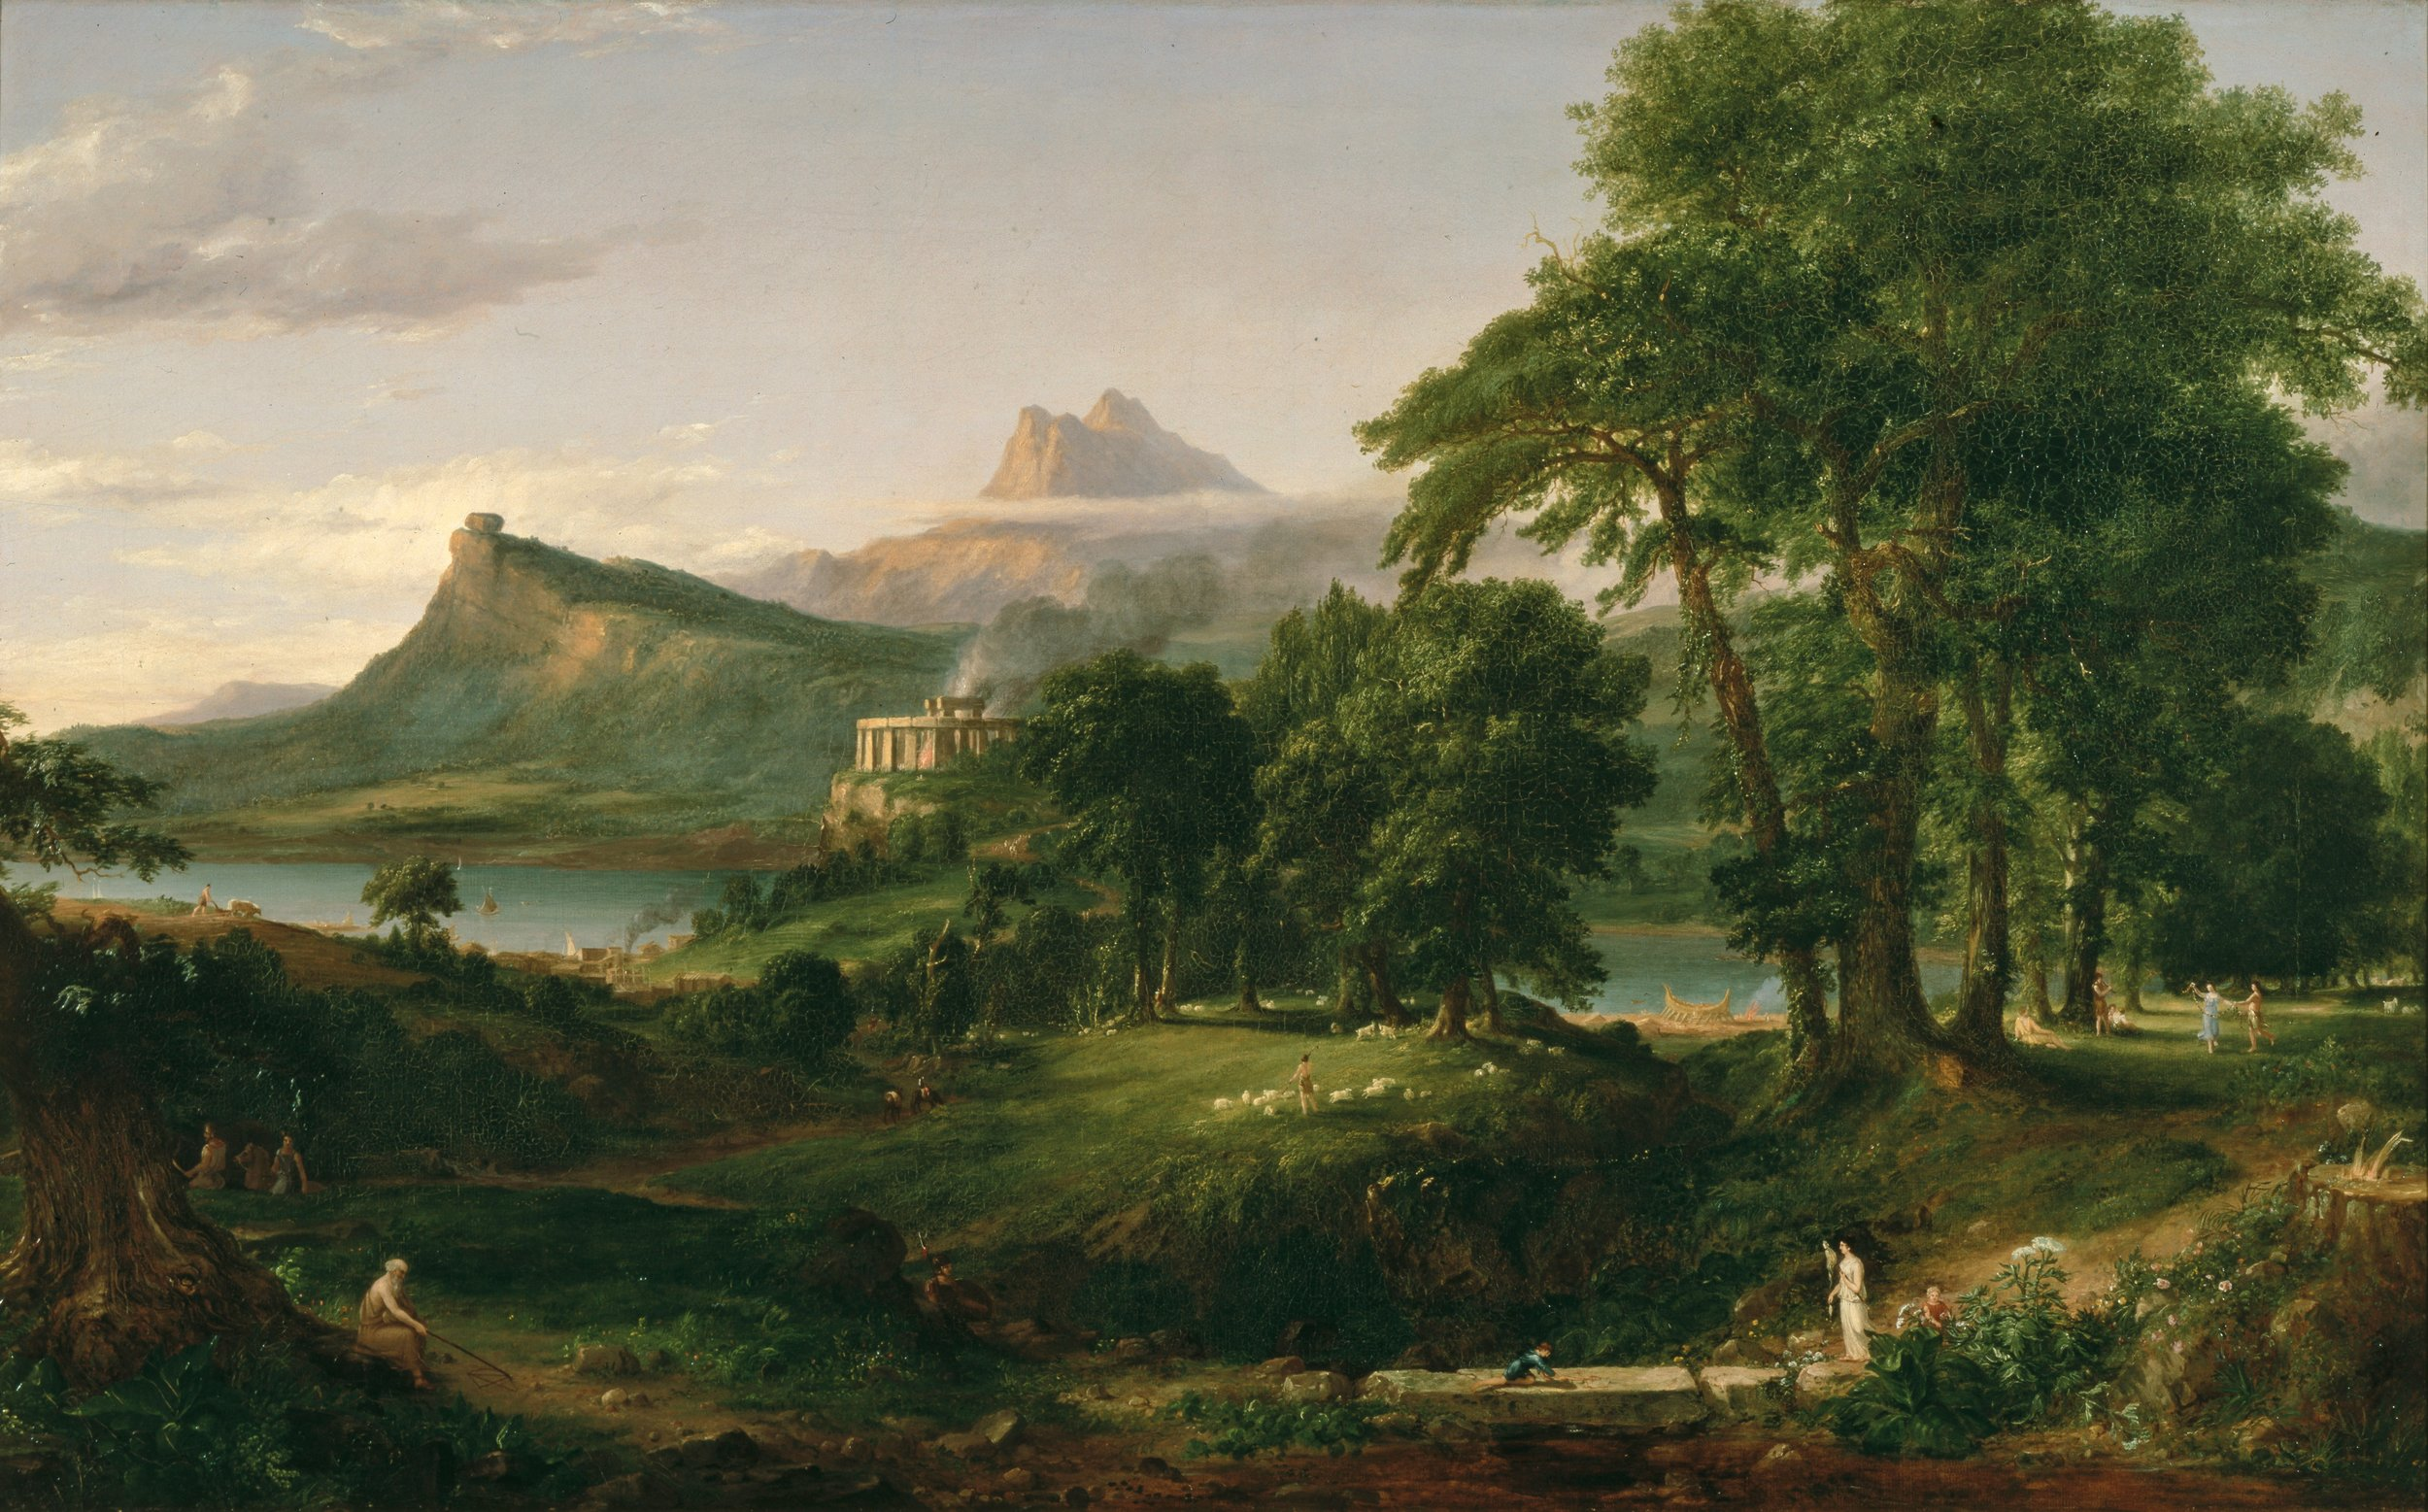 Thomas Cole, The Course of Empire - Savage State, 1834